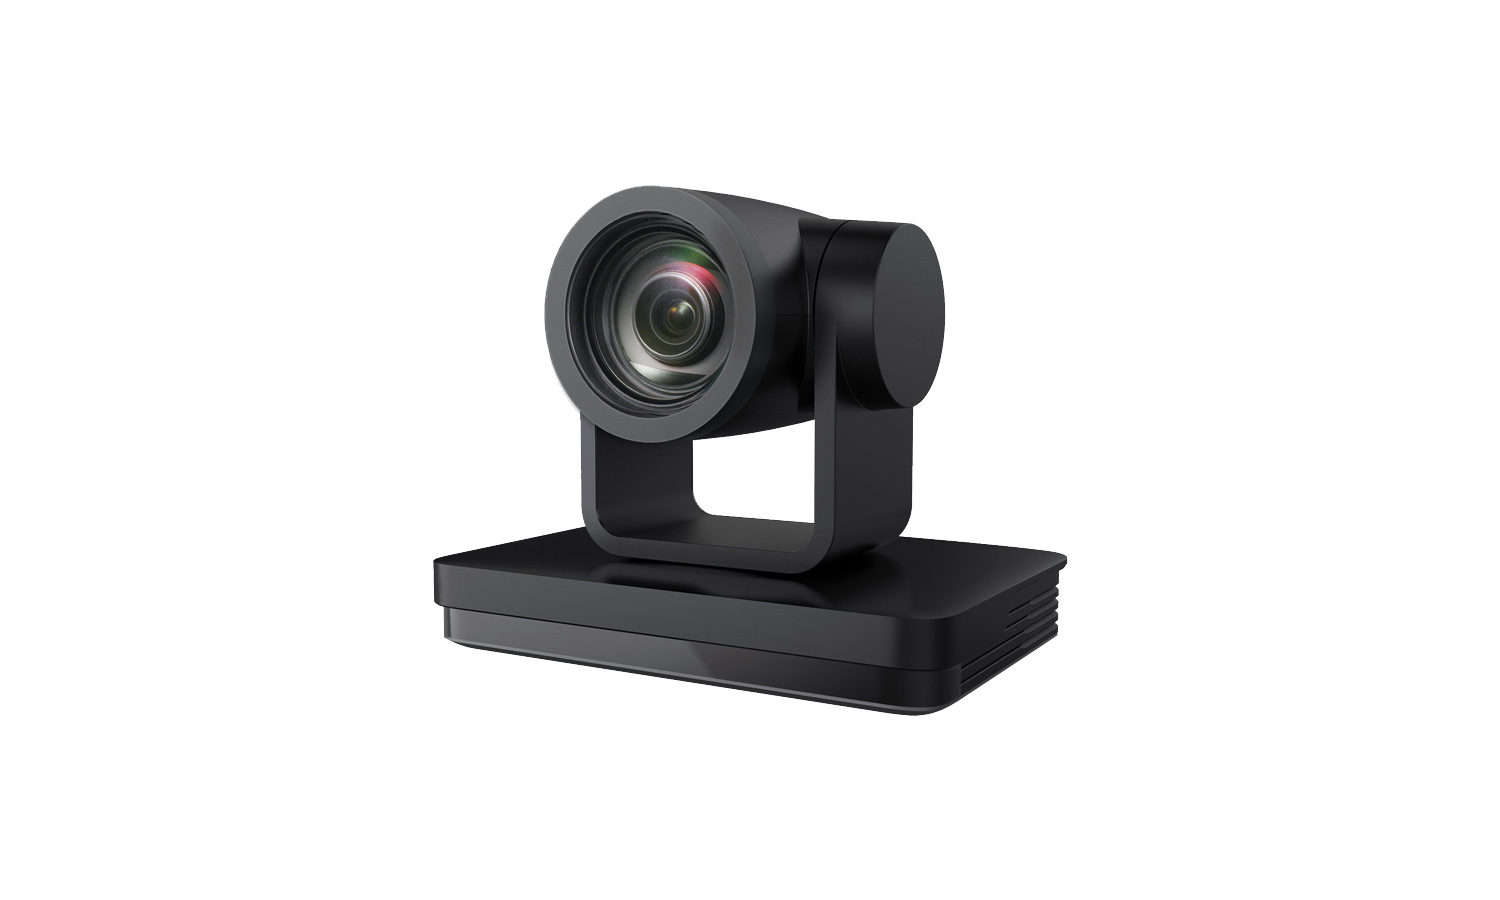 BG-UPTZ-20XHSU Universal PTZ 20X HDMI/SDI/USB 3.0 RS232/485 Live Streaming Camera by BZBGEAR